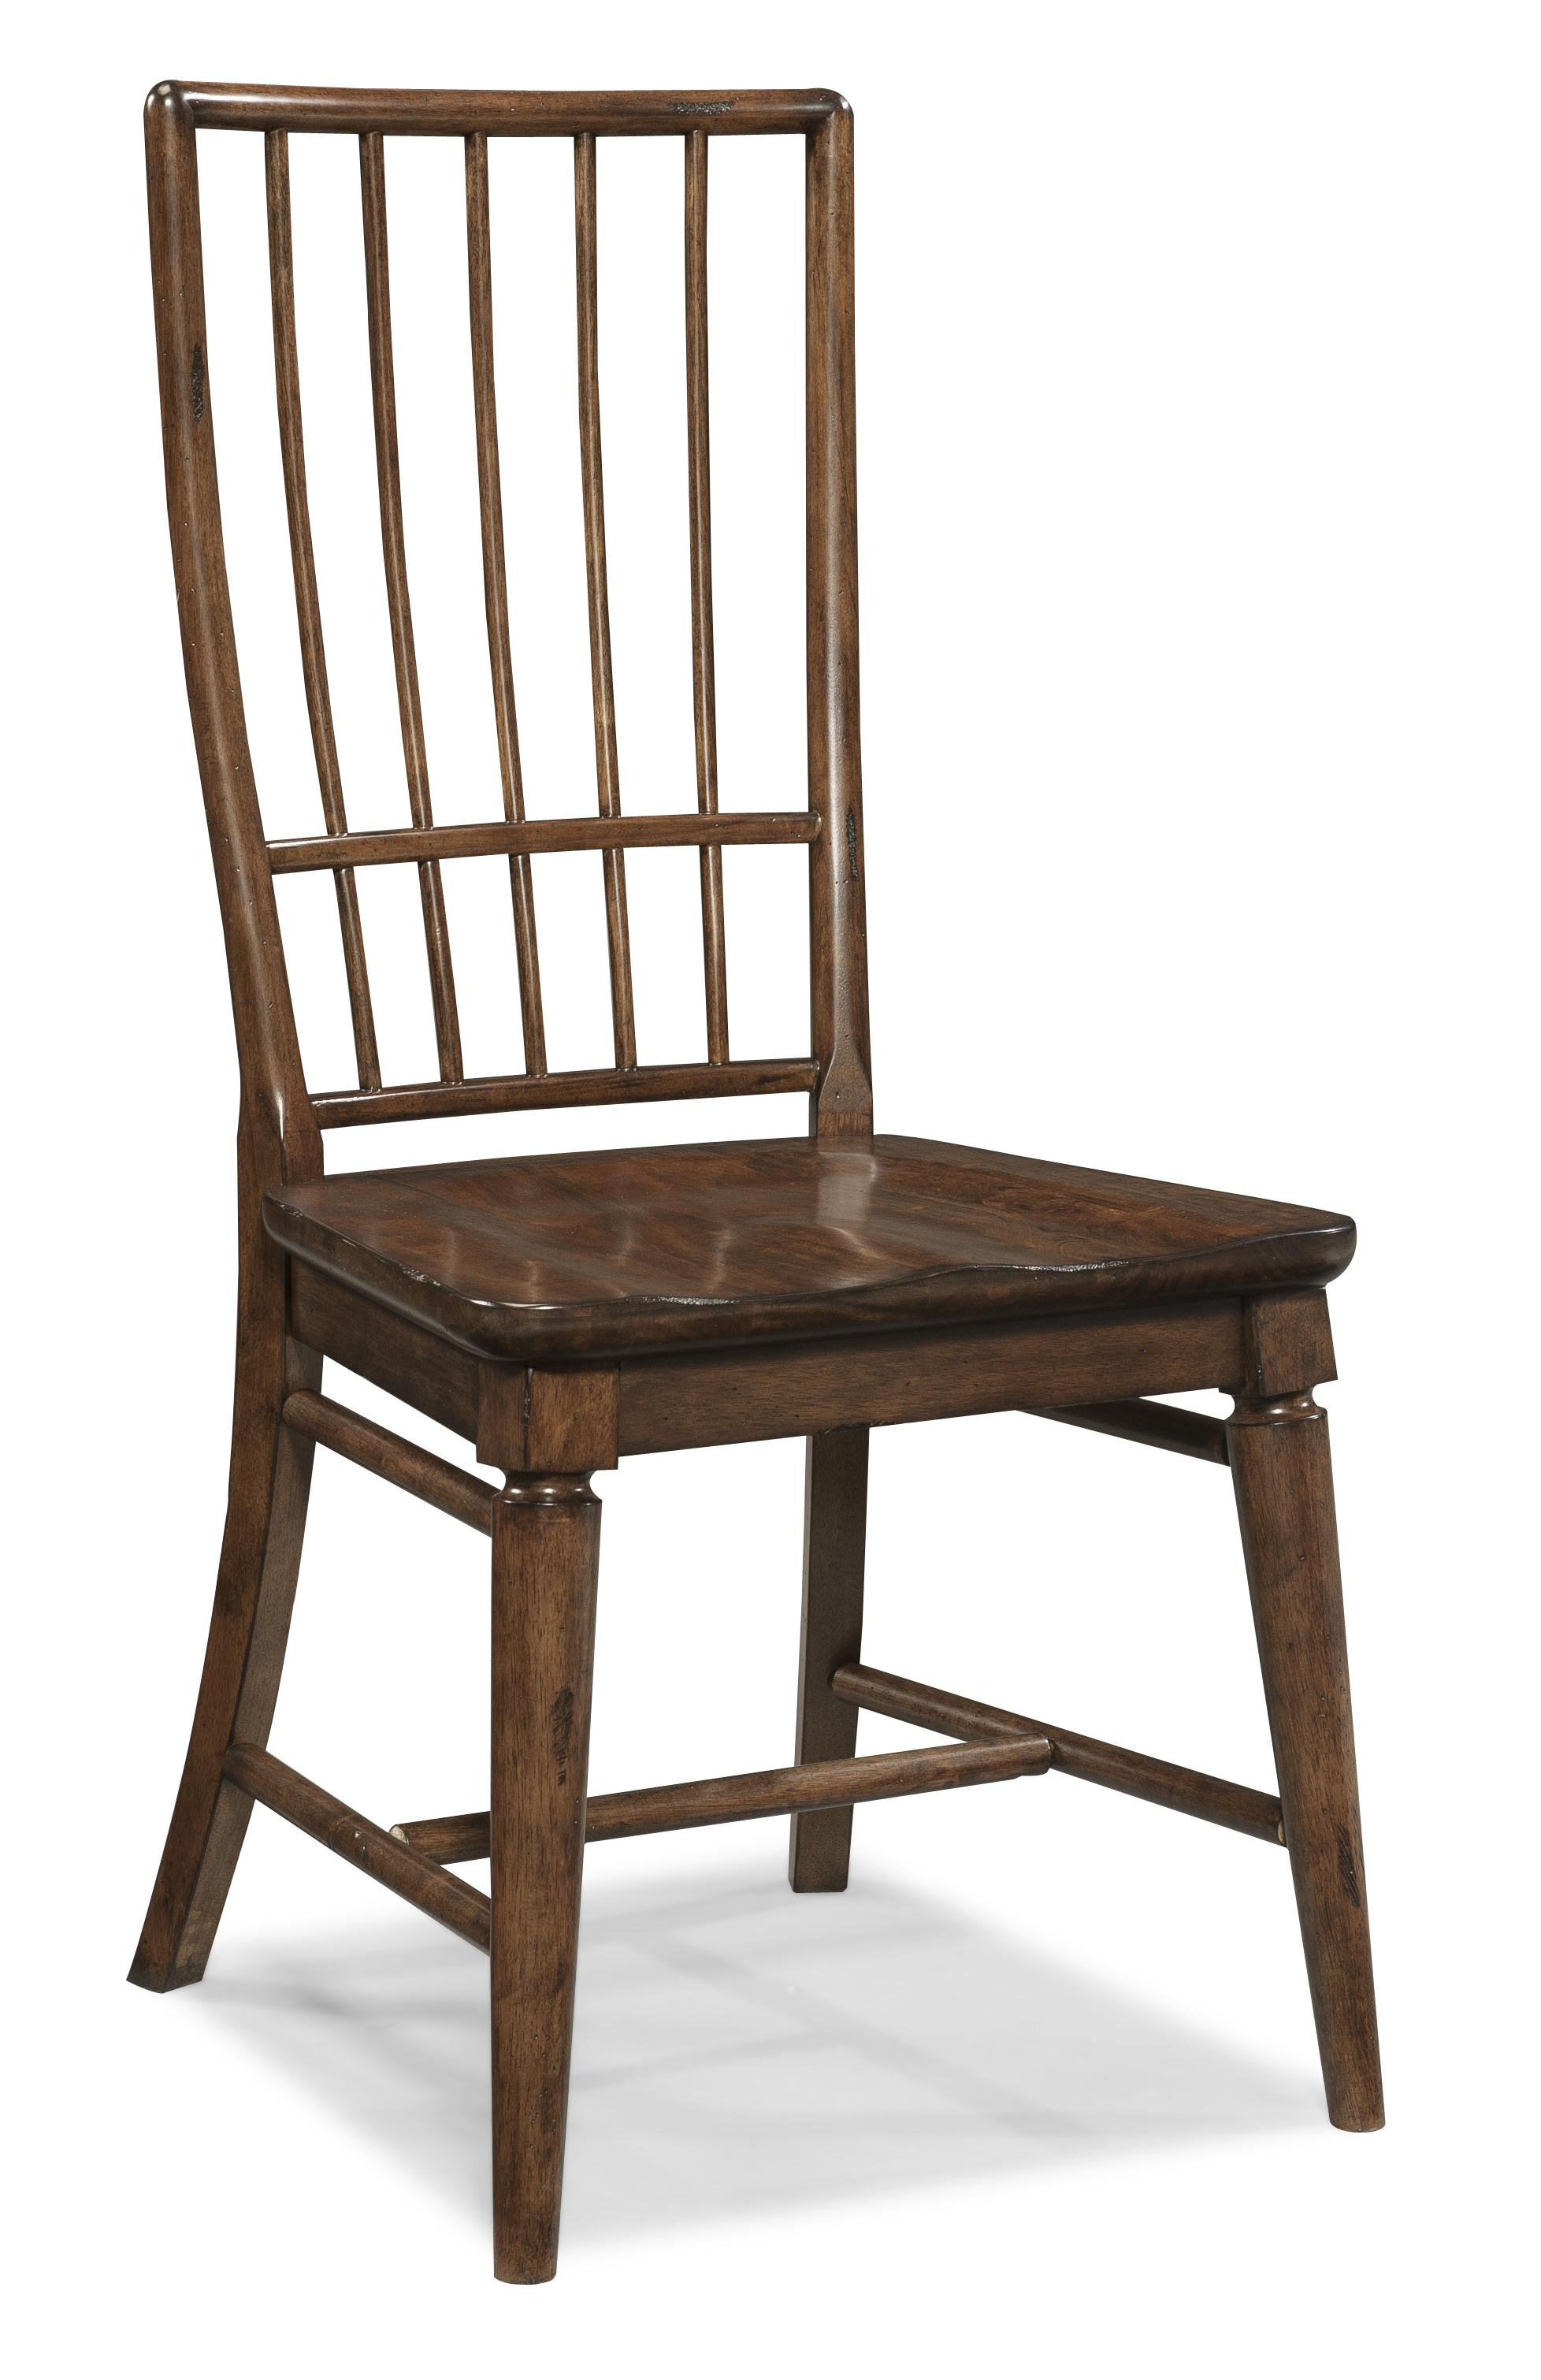 Carolina Preserves By Klaussner Blue Ridge Cherry Rake Back Side Chair    Item Number: 426